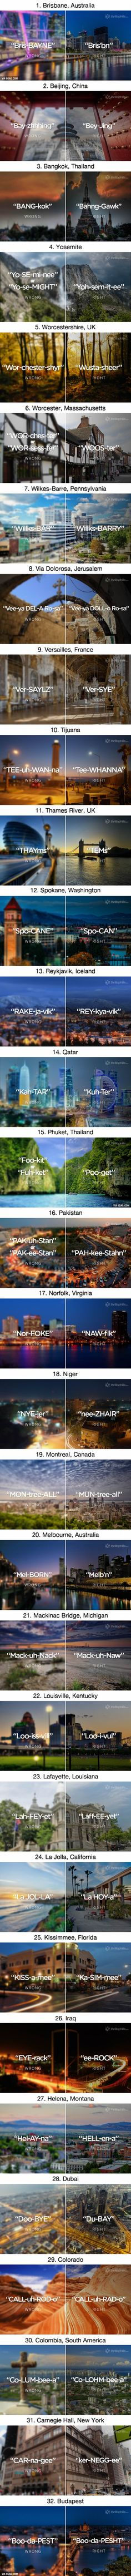 32 Places People Have Mispronounced Their Entire Life